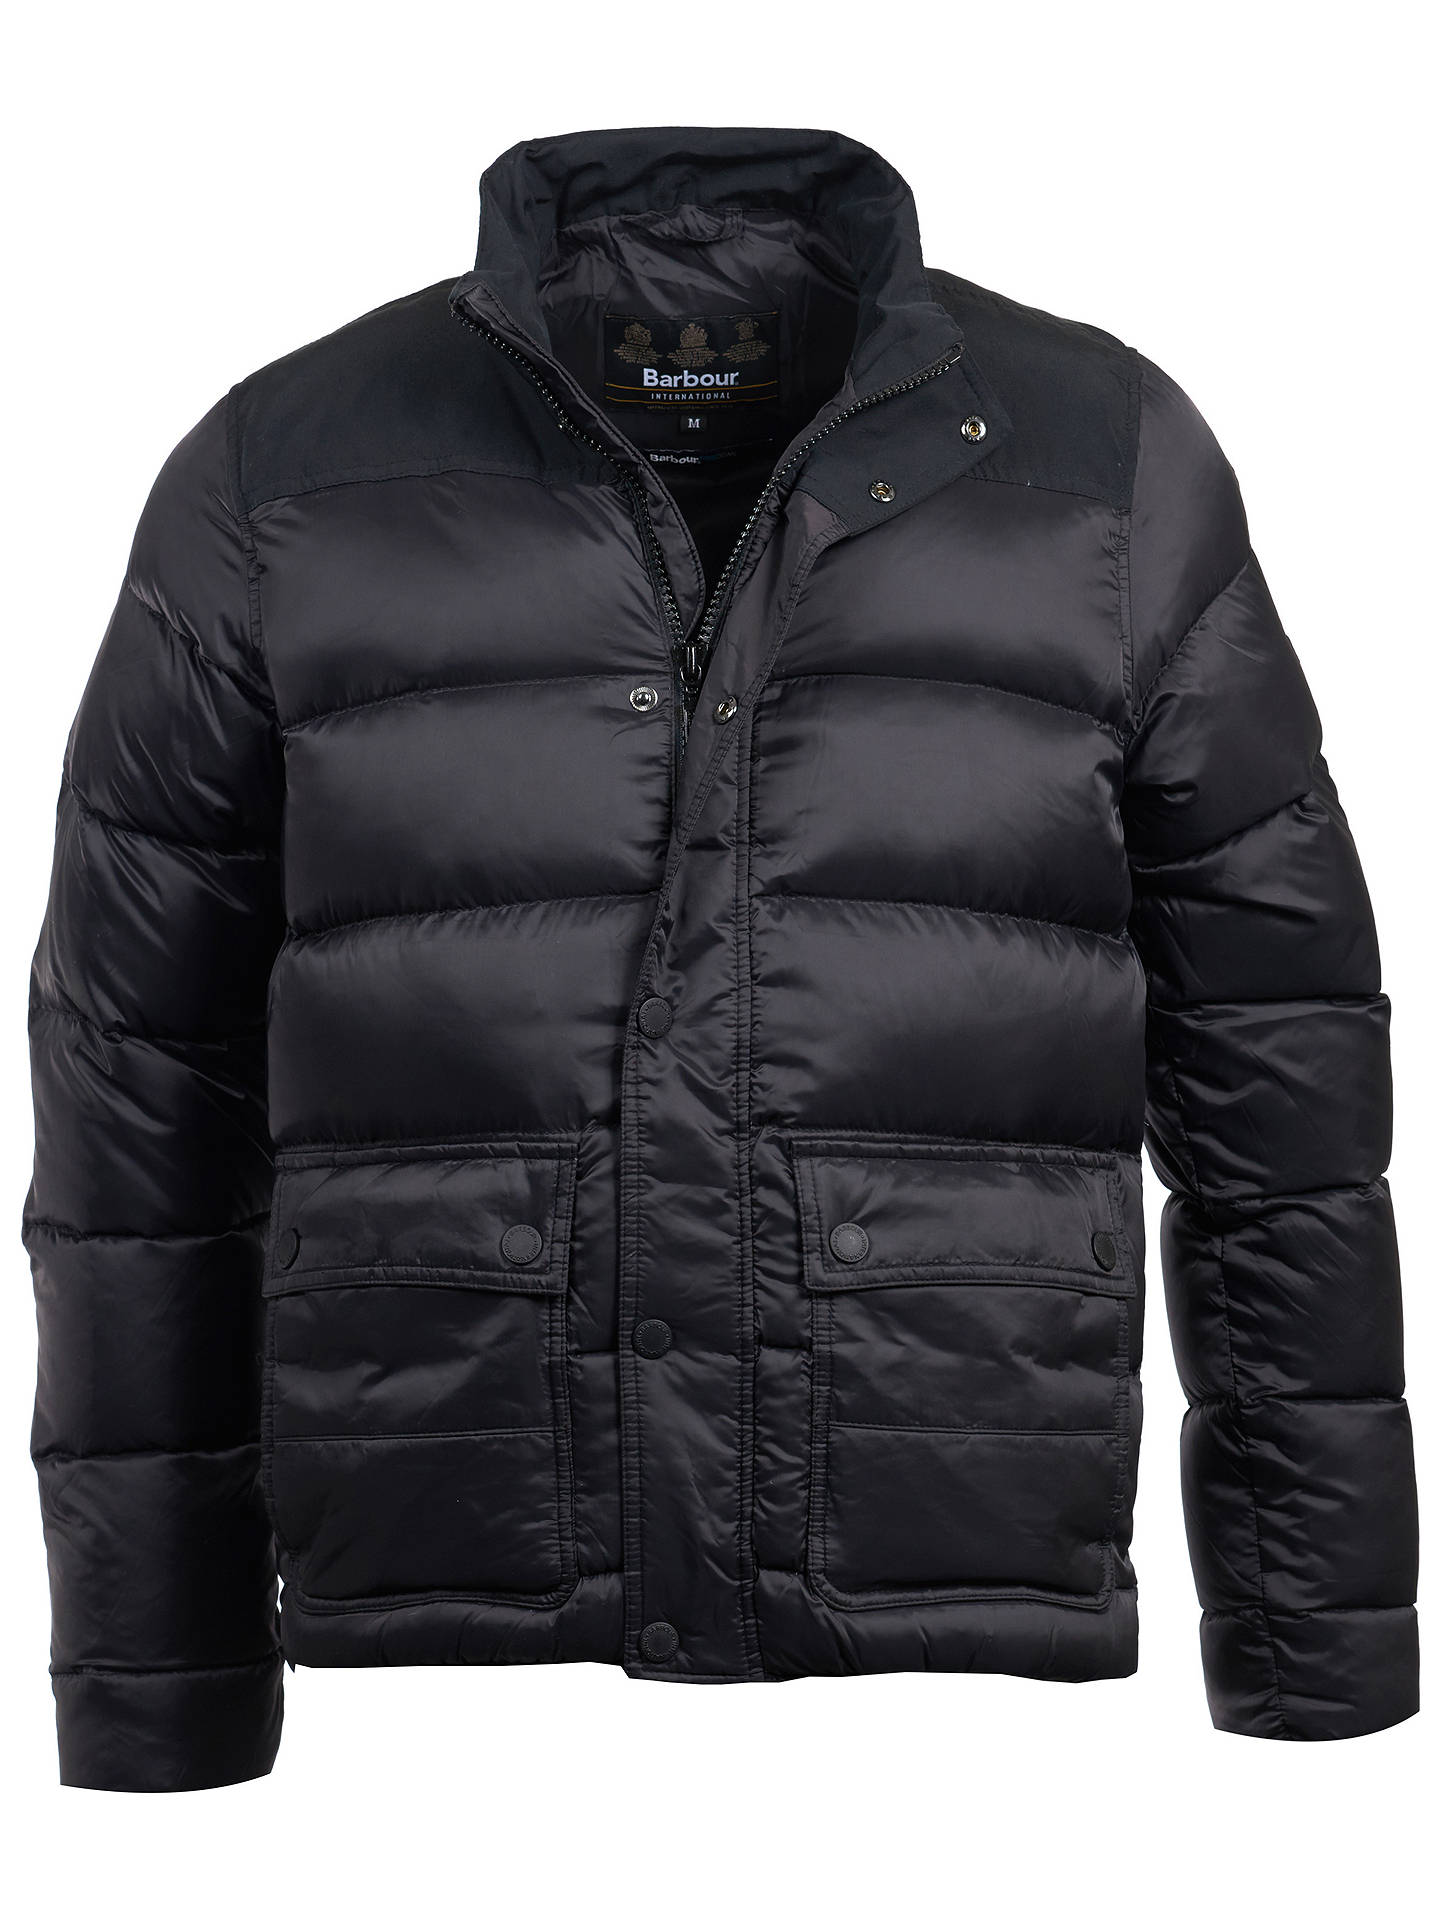 Buy Barbour International Tuck Bomber Jacket, Black, XL Online at johnlewis.com